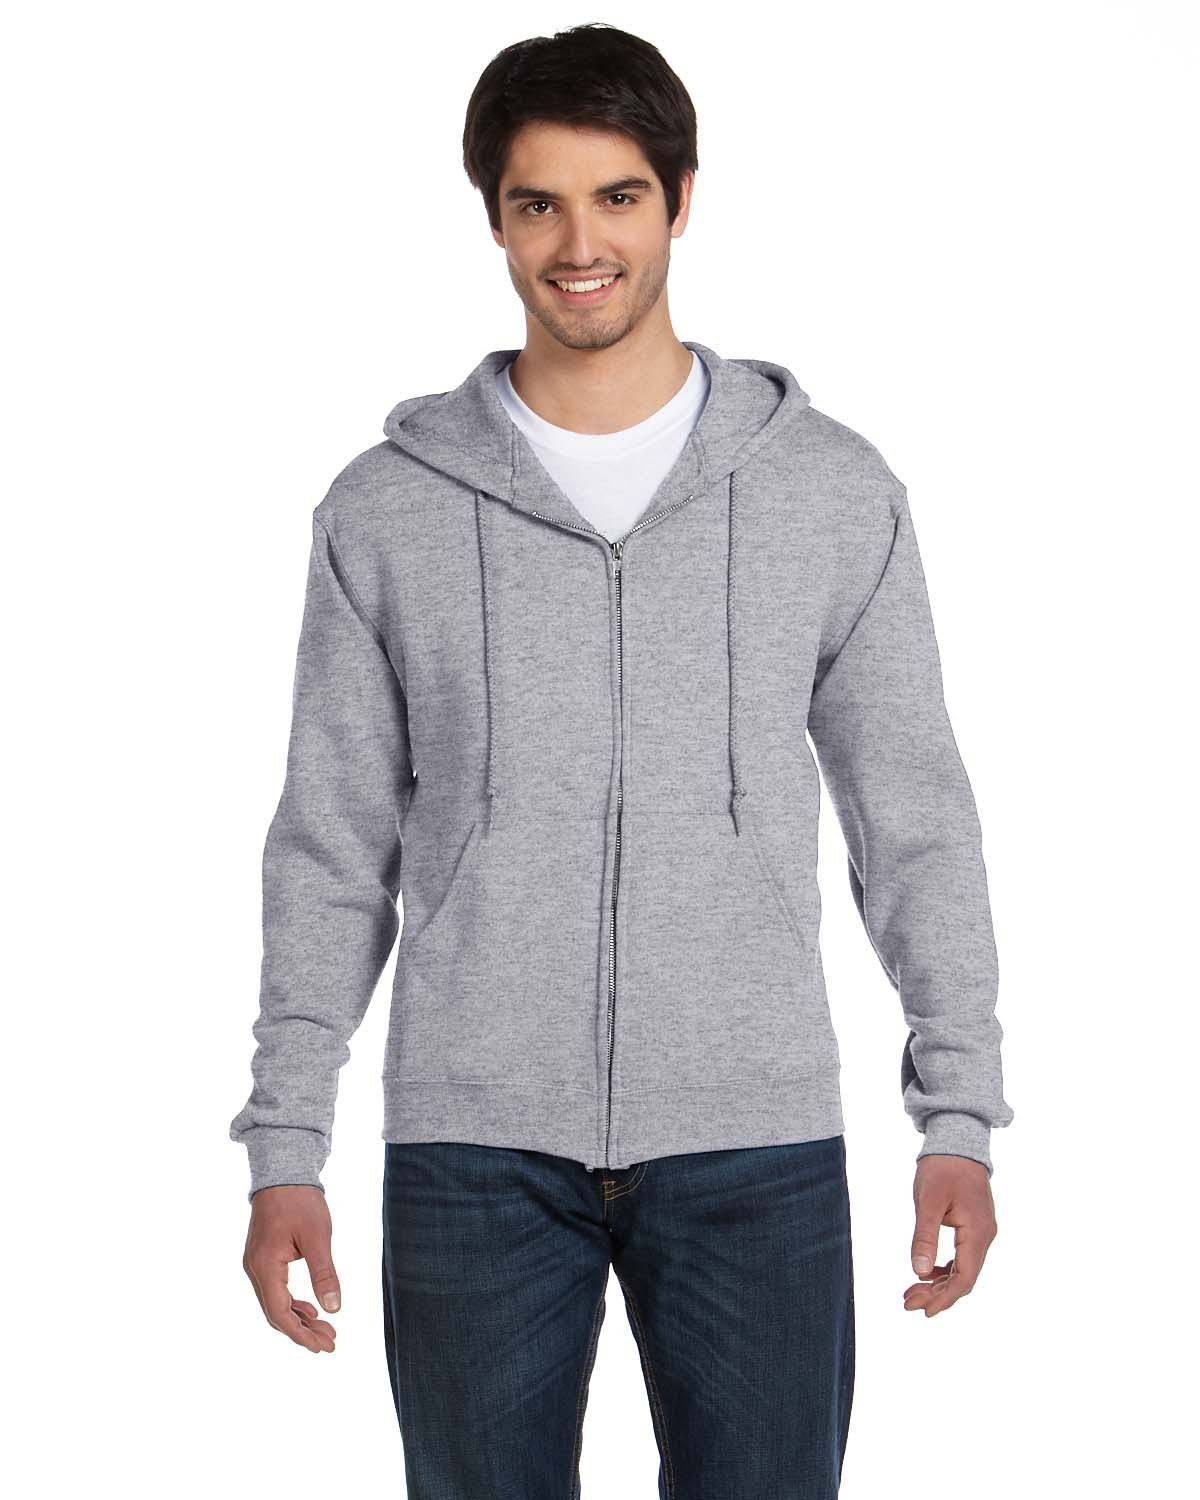 Fruit of the Loom 82230 Heavyweight 70/30 Full-Zip Hood - Athletic Heather - L 82230